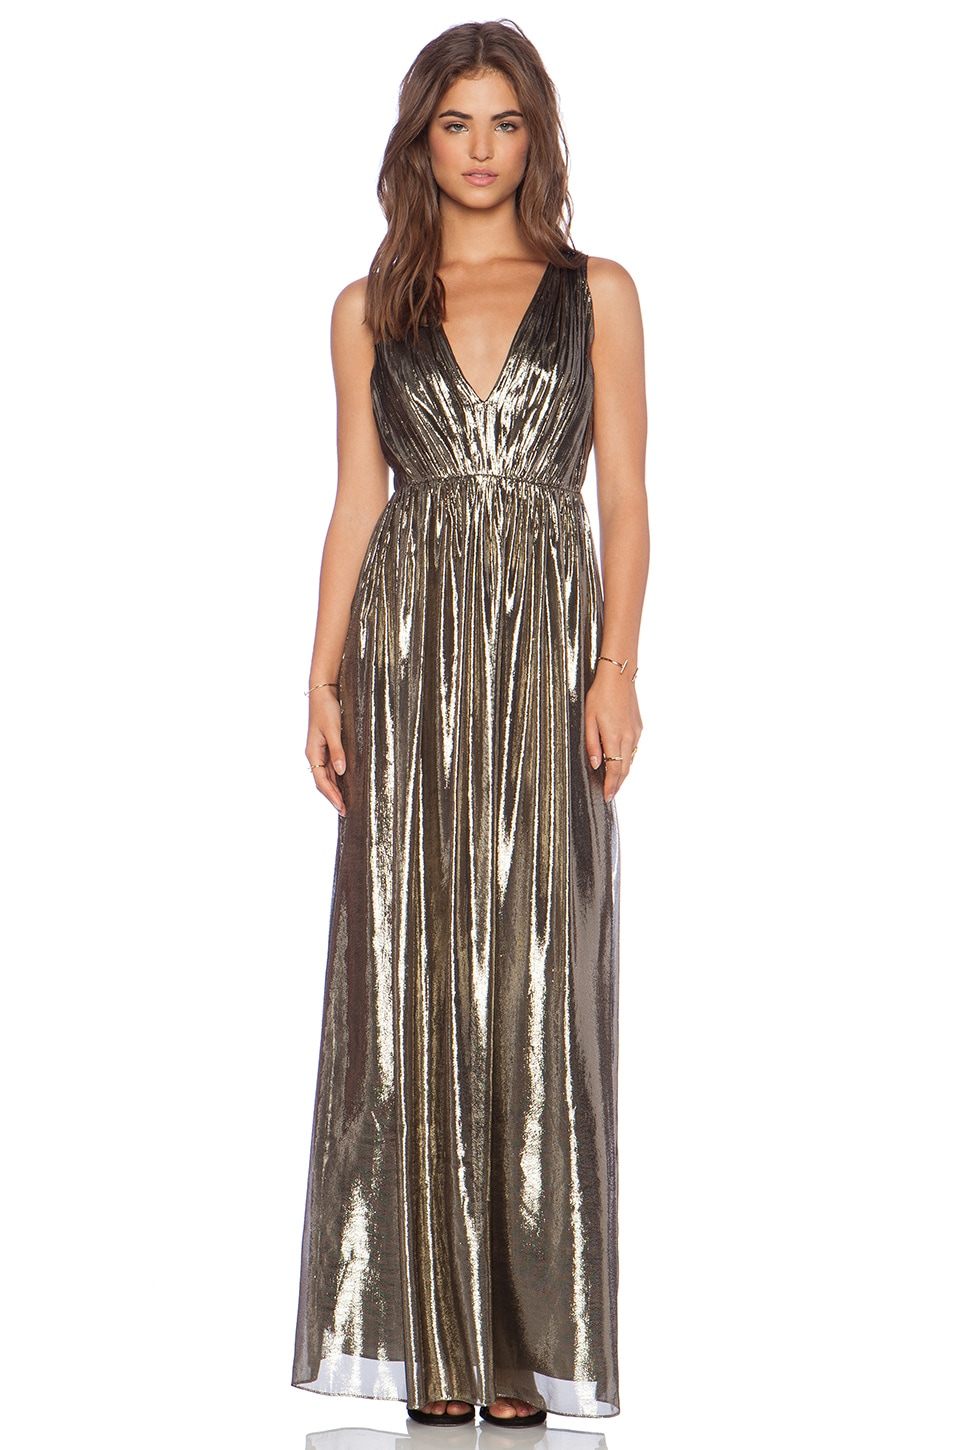 Alice   Olivia Issa Pleated Maxi Dress in Bronze | REVOLVE